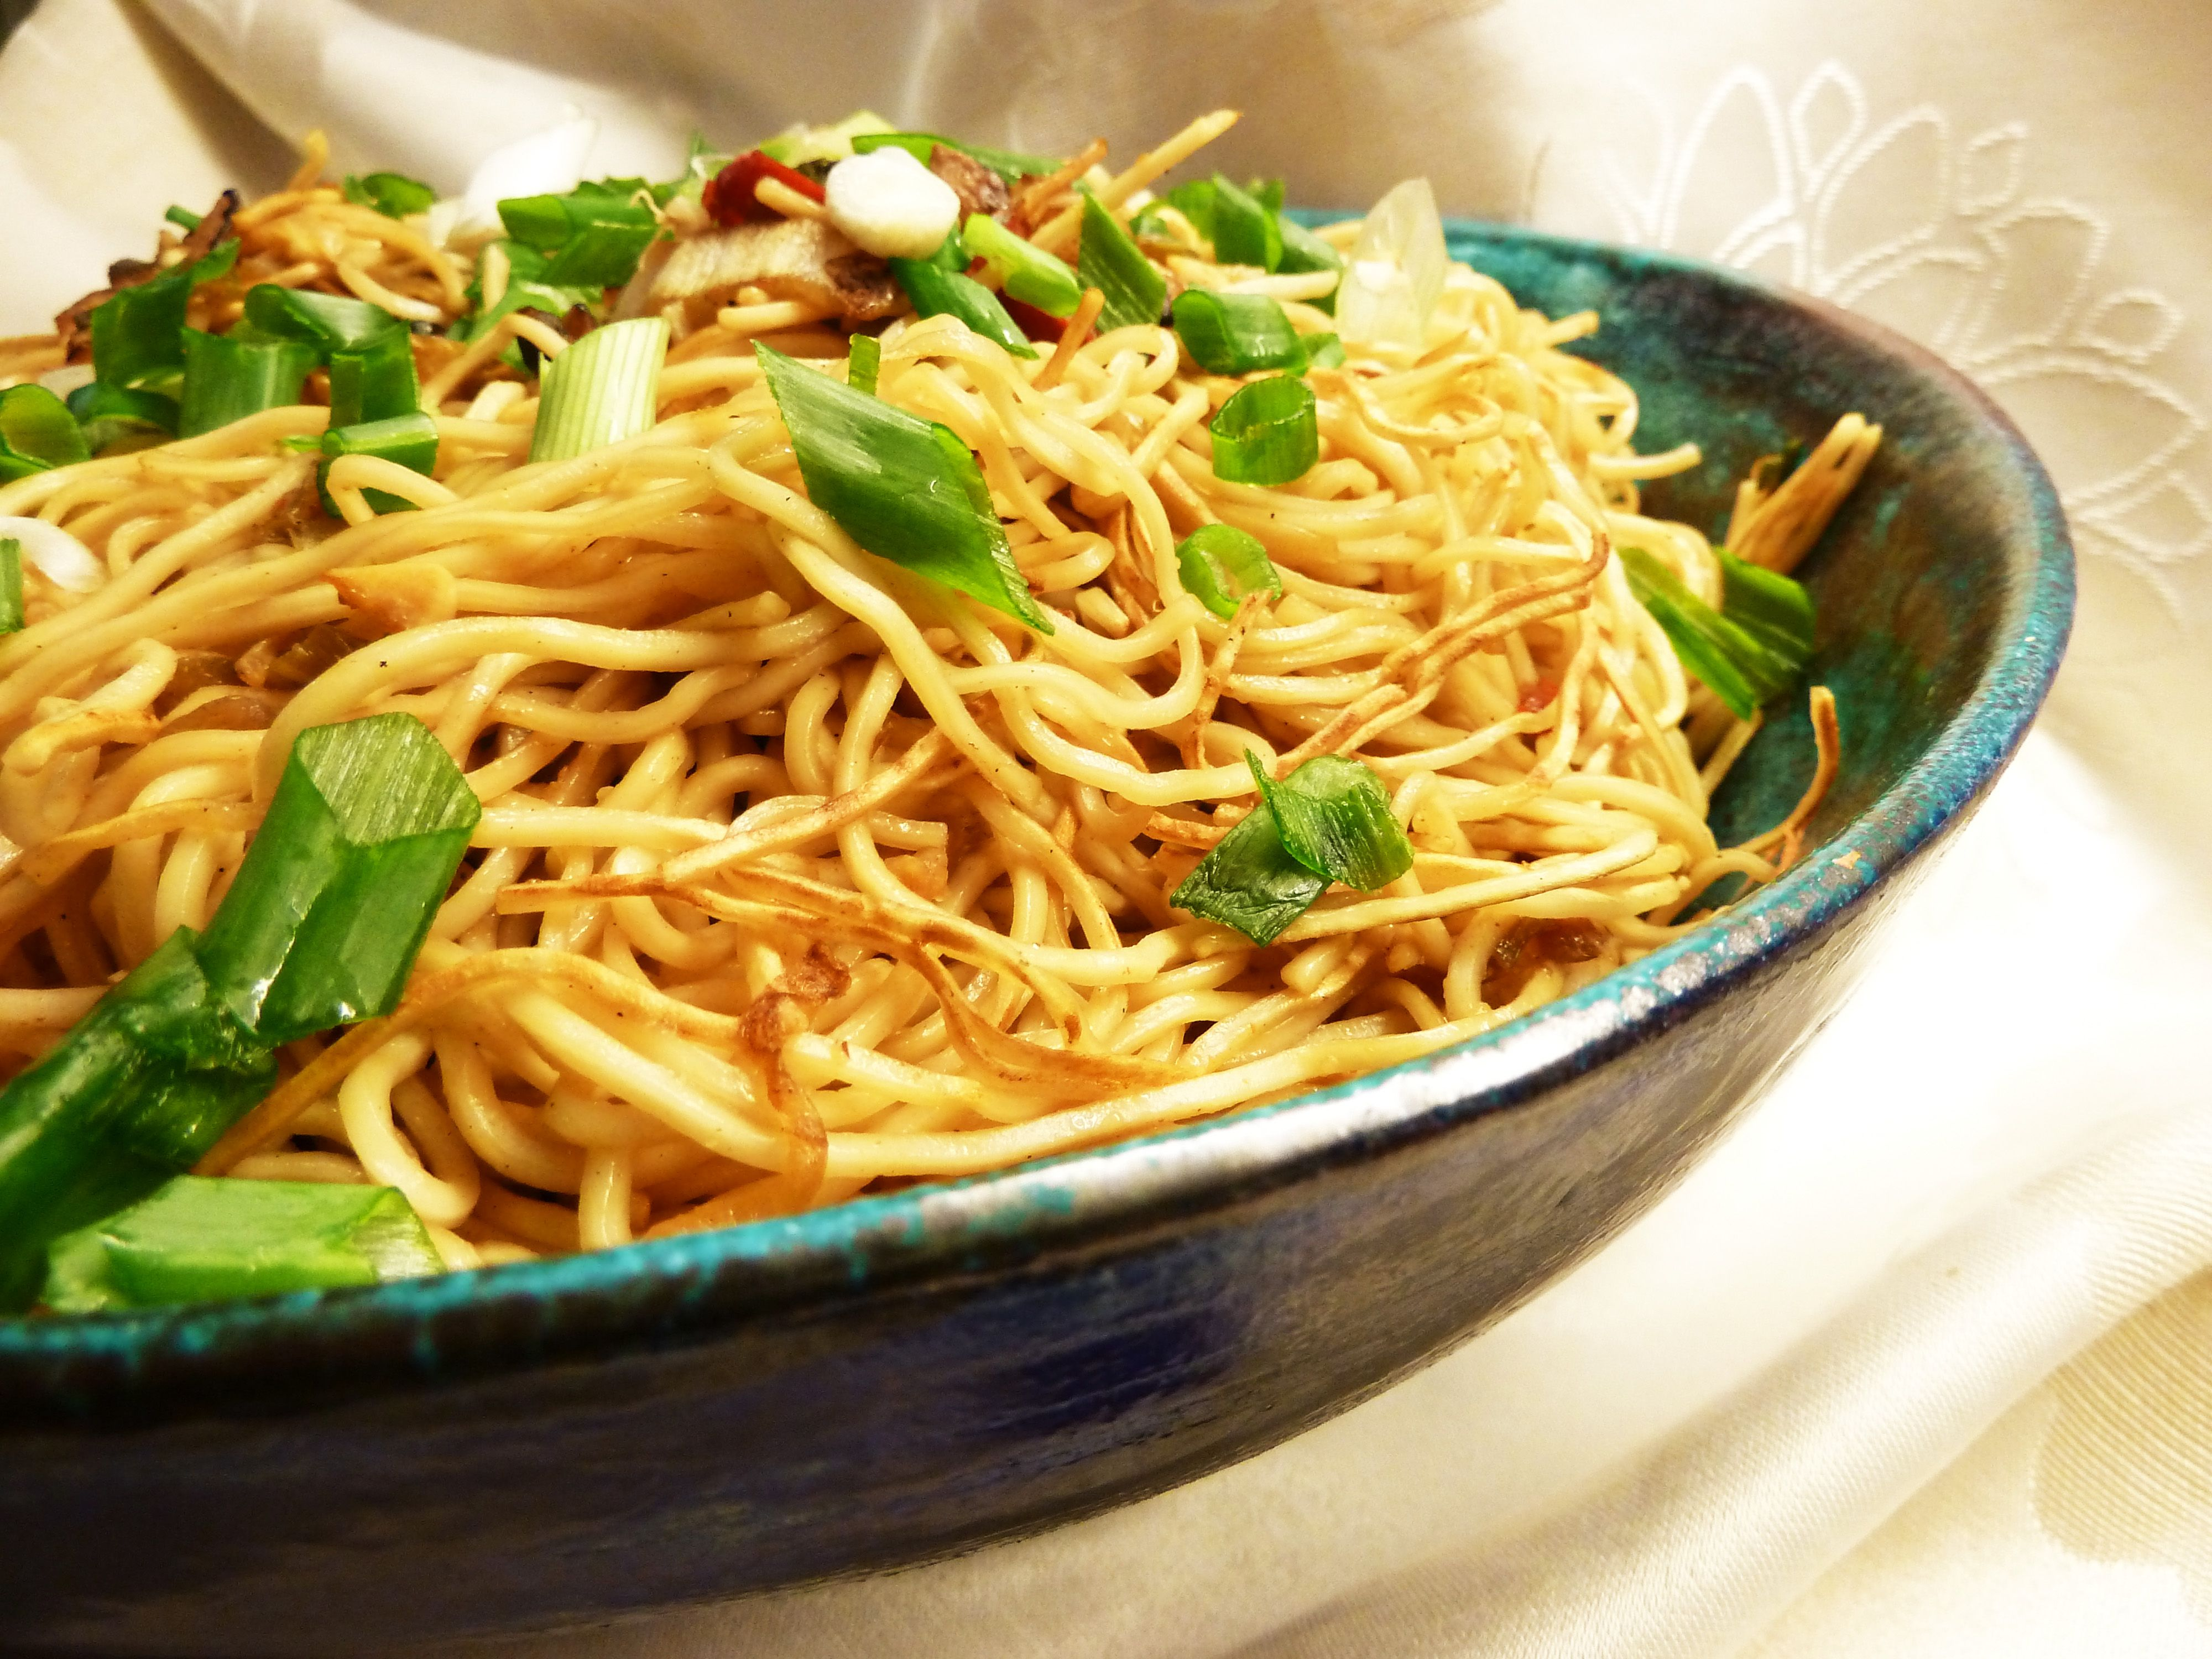 Bami Goreng (Indonesian Version of Lo Mein) Recipe (With